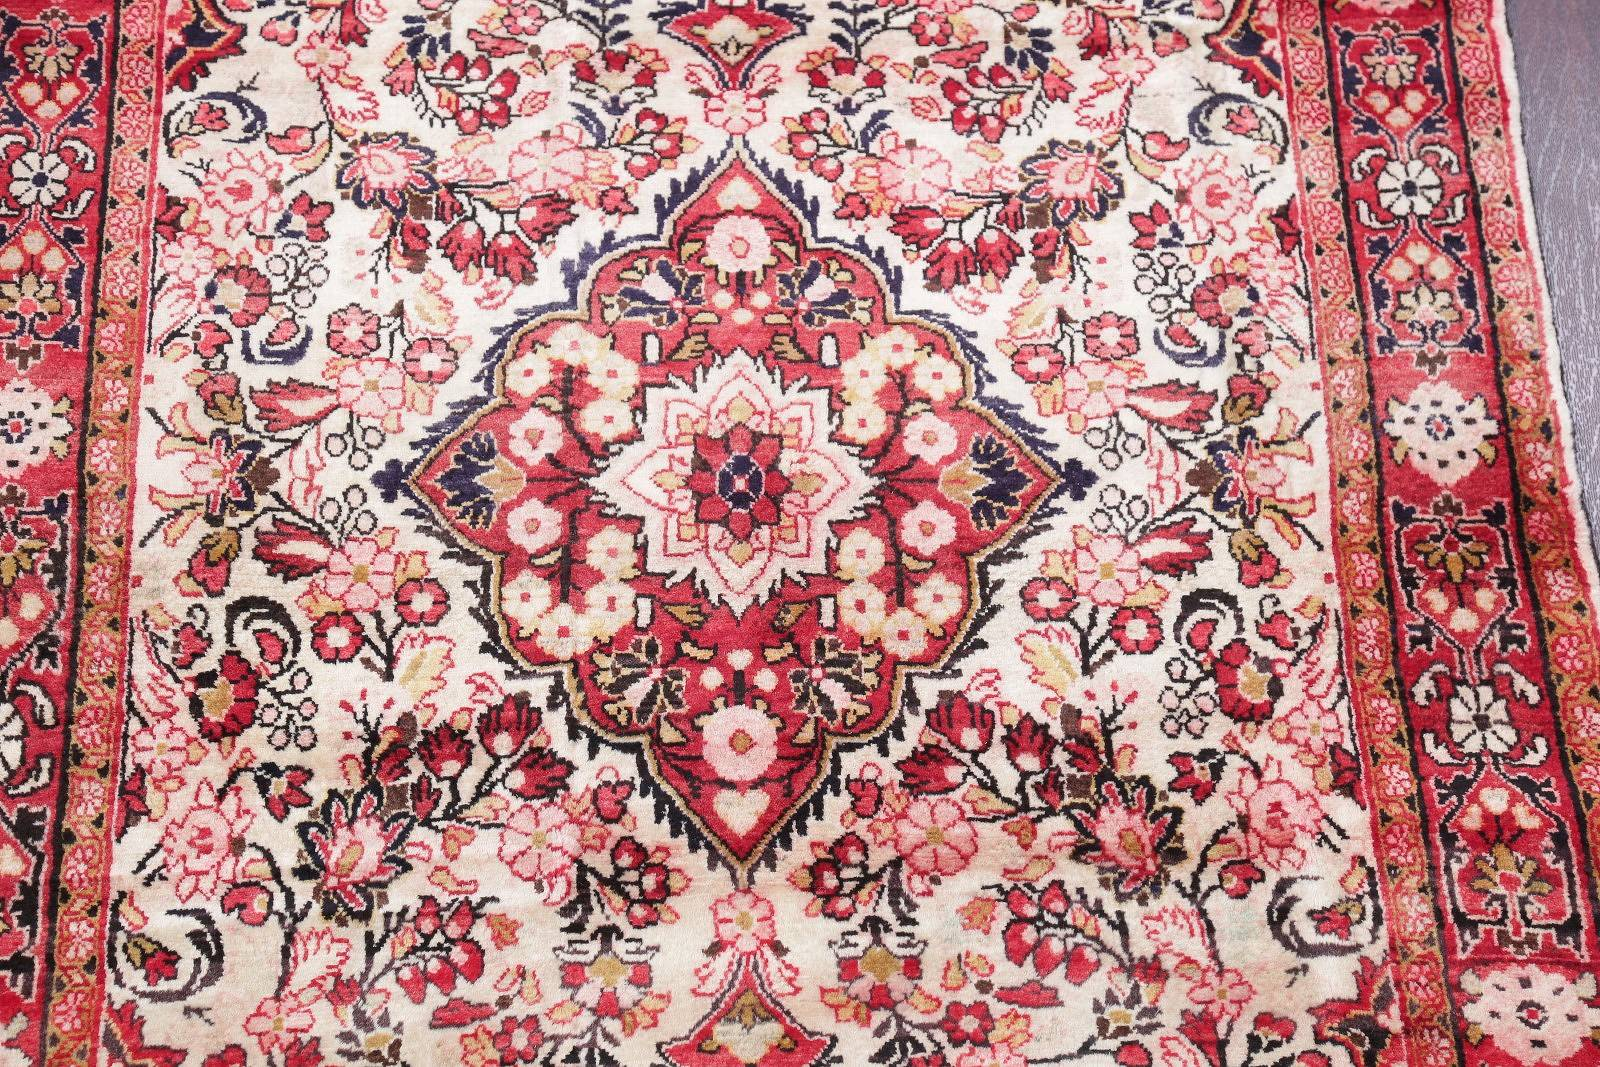 One of Kind Ivory Floral Sarouk Persian Hand-Knotted 4x7 Wool Area Rug